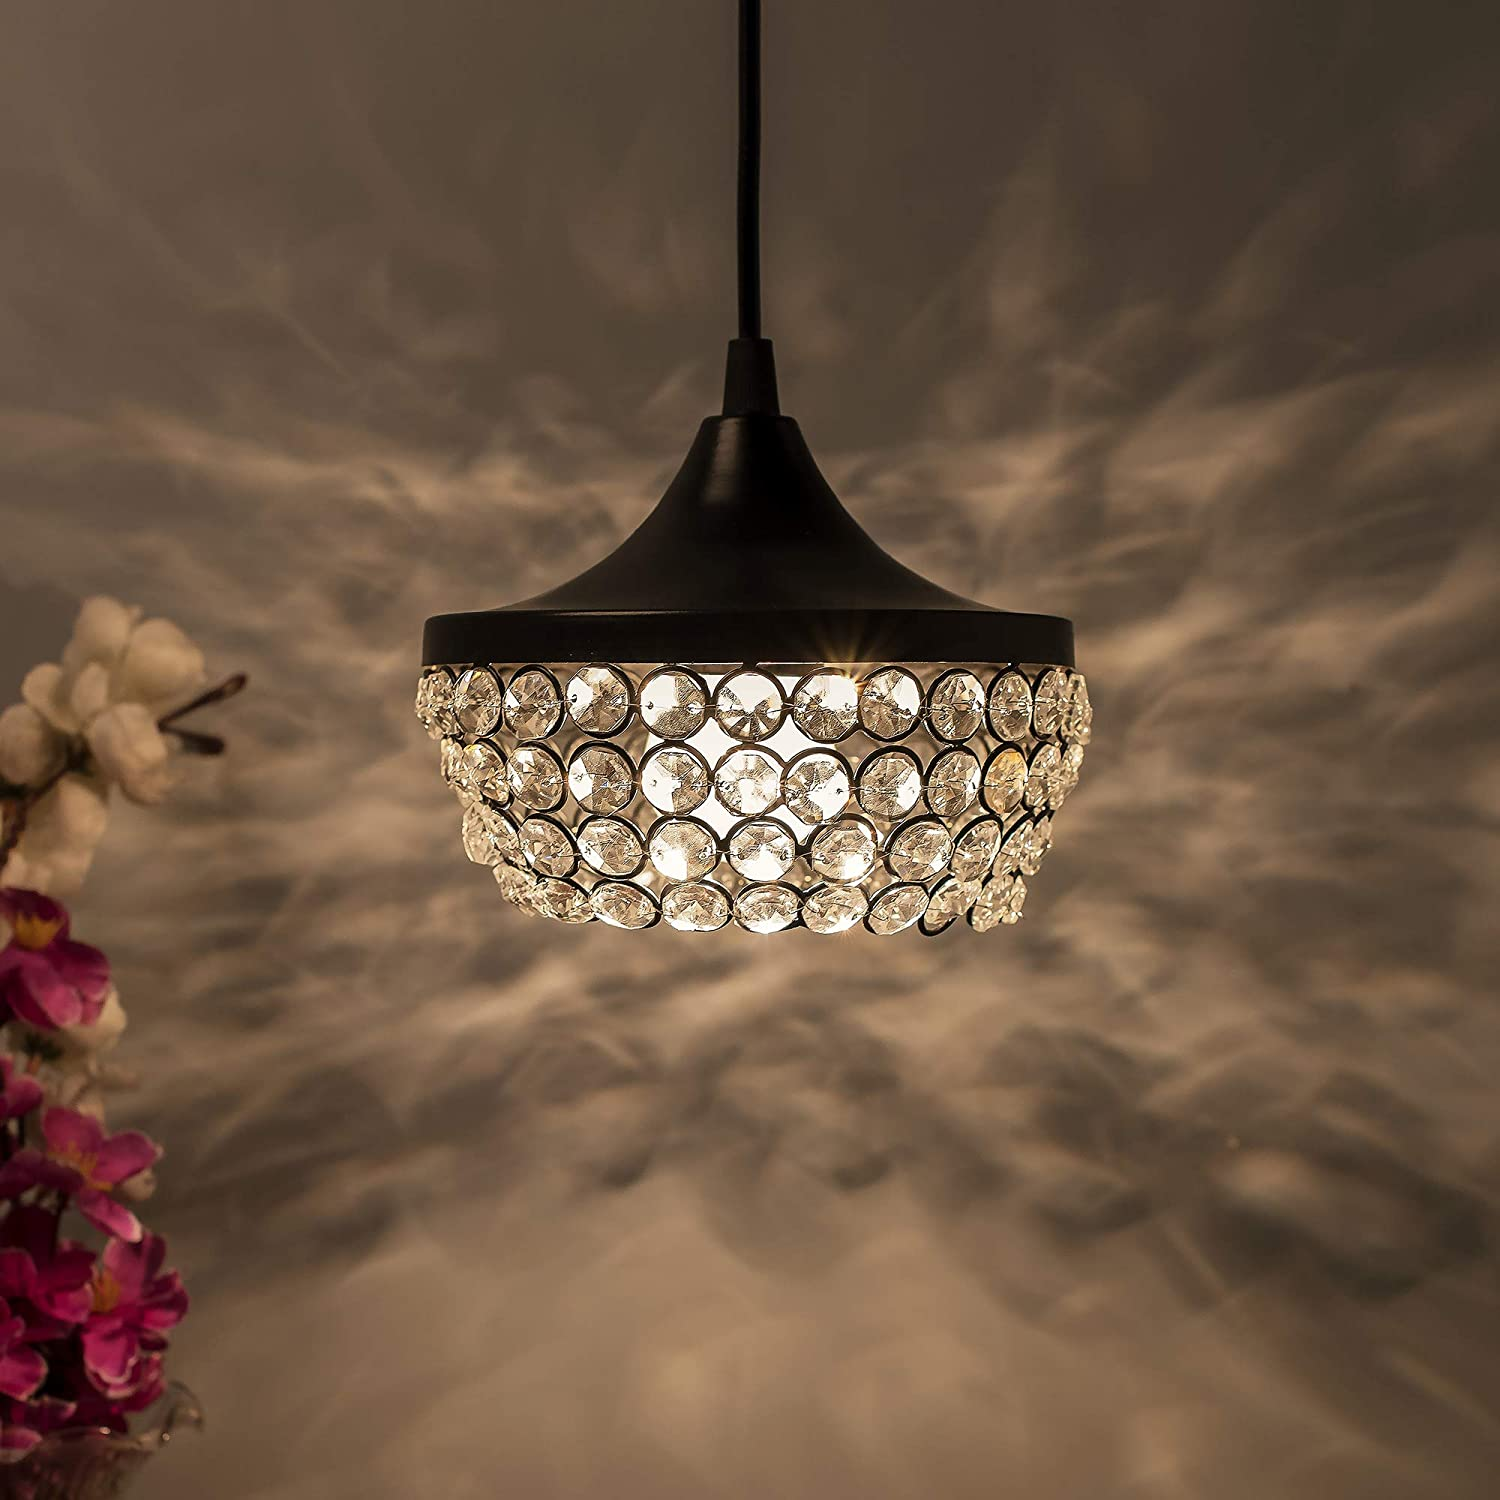 Buy Homesake Antique Matt Black Wall Spotlights Crystal Hanging Pendant Lights Lantern Ceiling Light Nordic E27 Jhumar Home Decor Items Pack Of 1 Online At Low Prices In India Amazon In